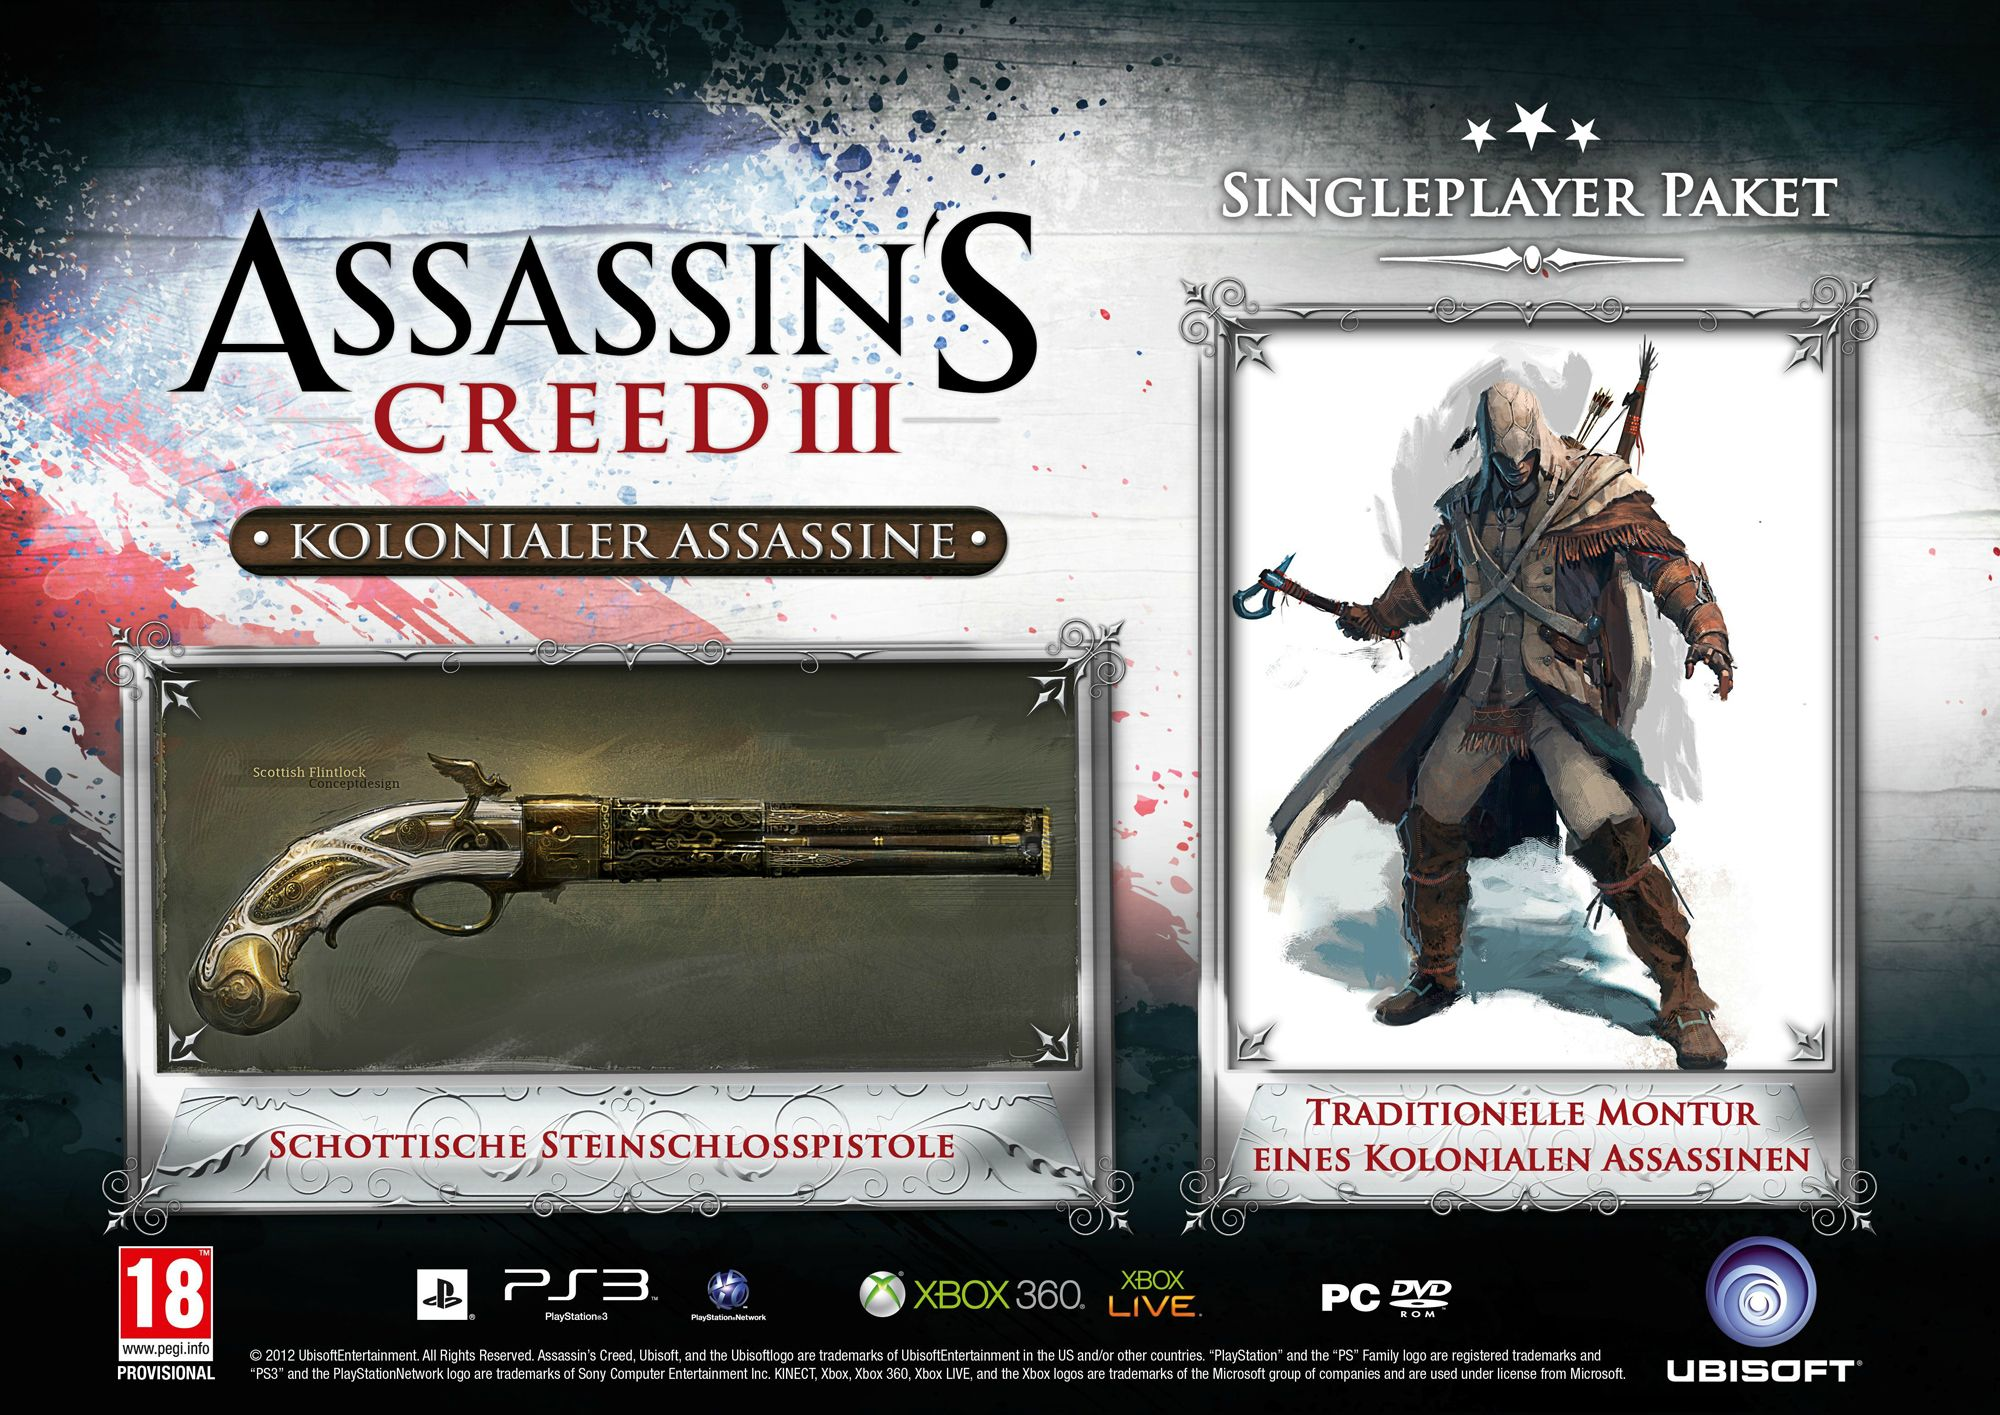 assassinscreed3 dlc exclusif preco 3 Assassin's Creed 3 : Des bonus de précommande en Allemagne  precommande Assassin's Creed 3